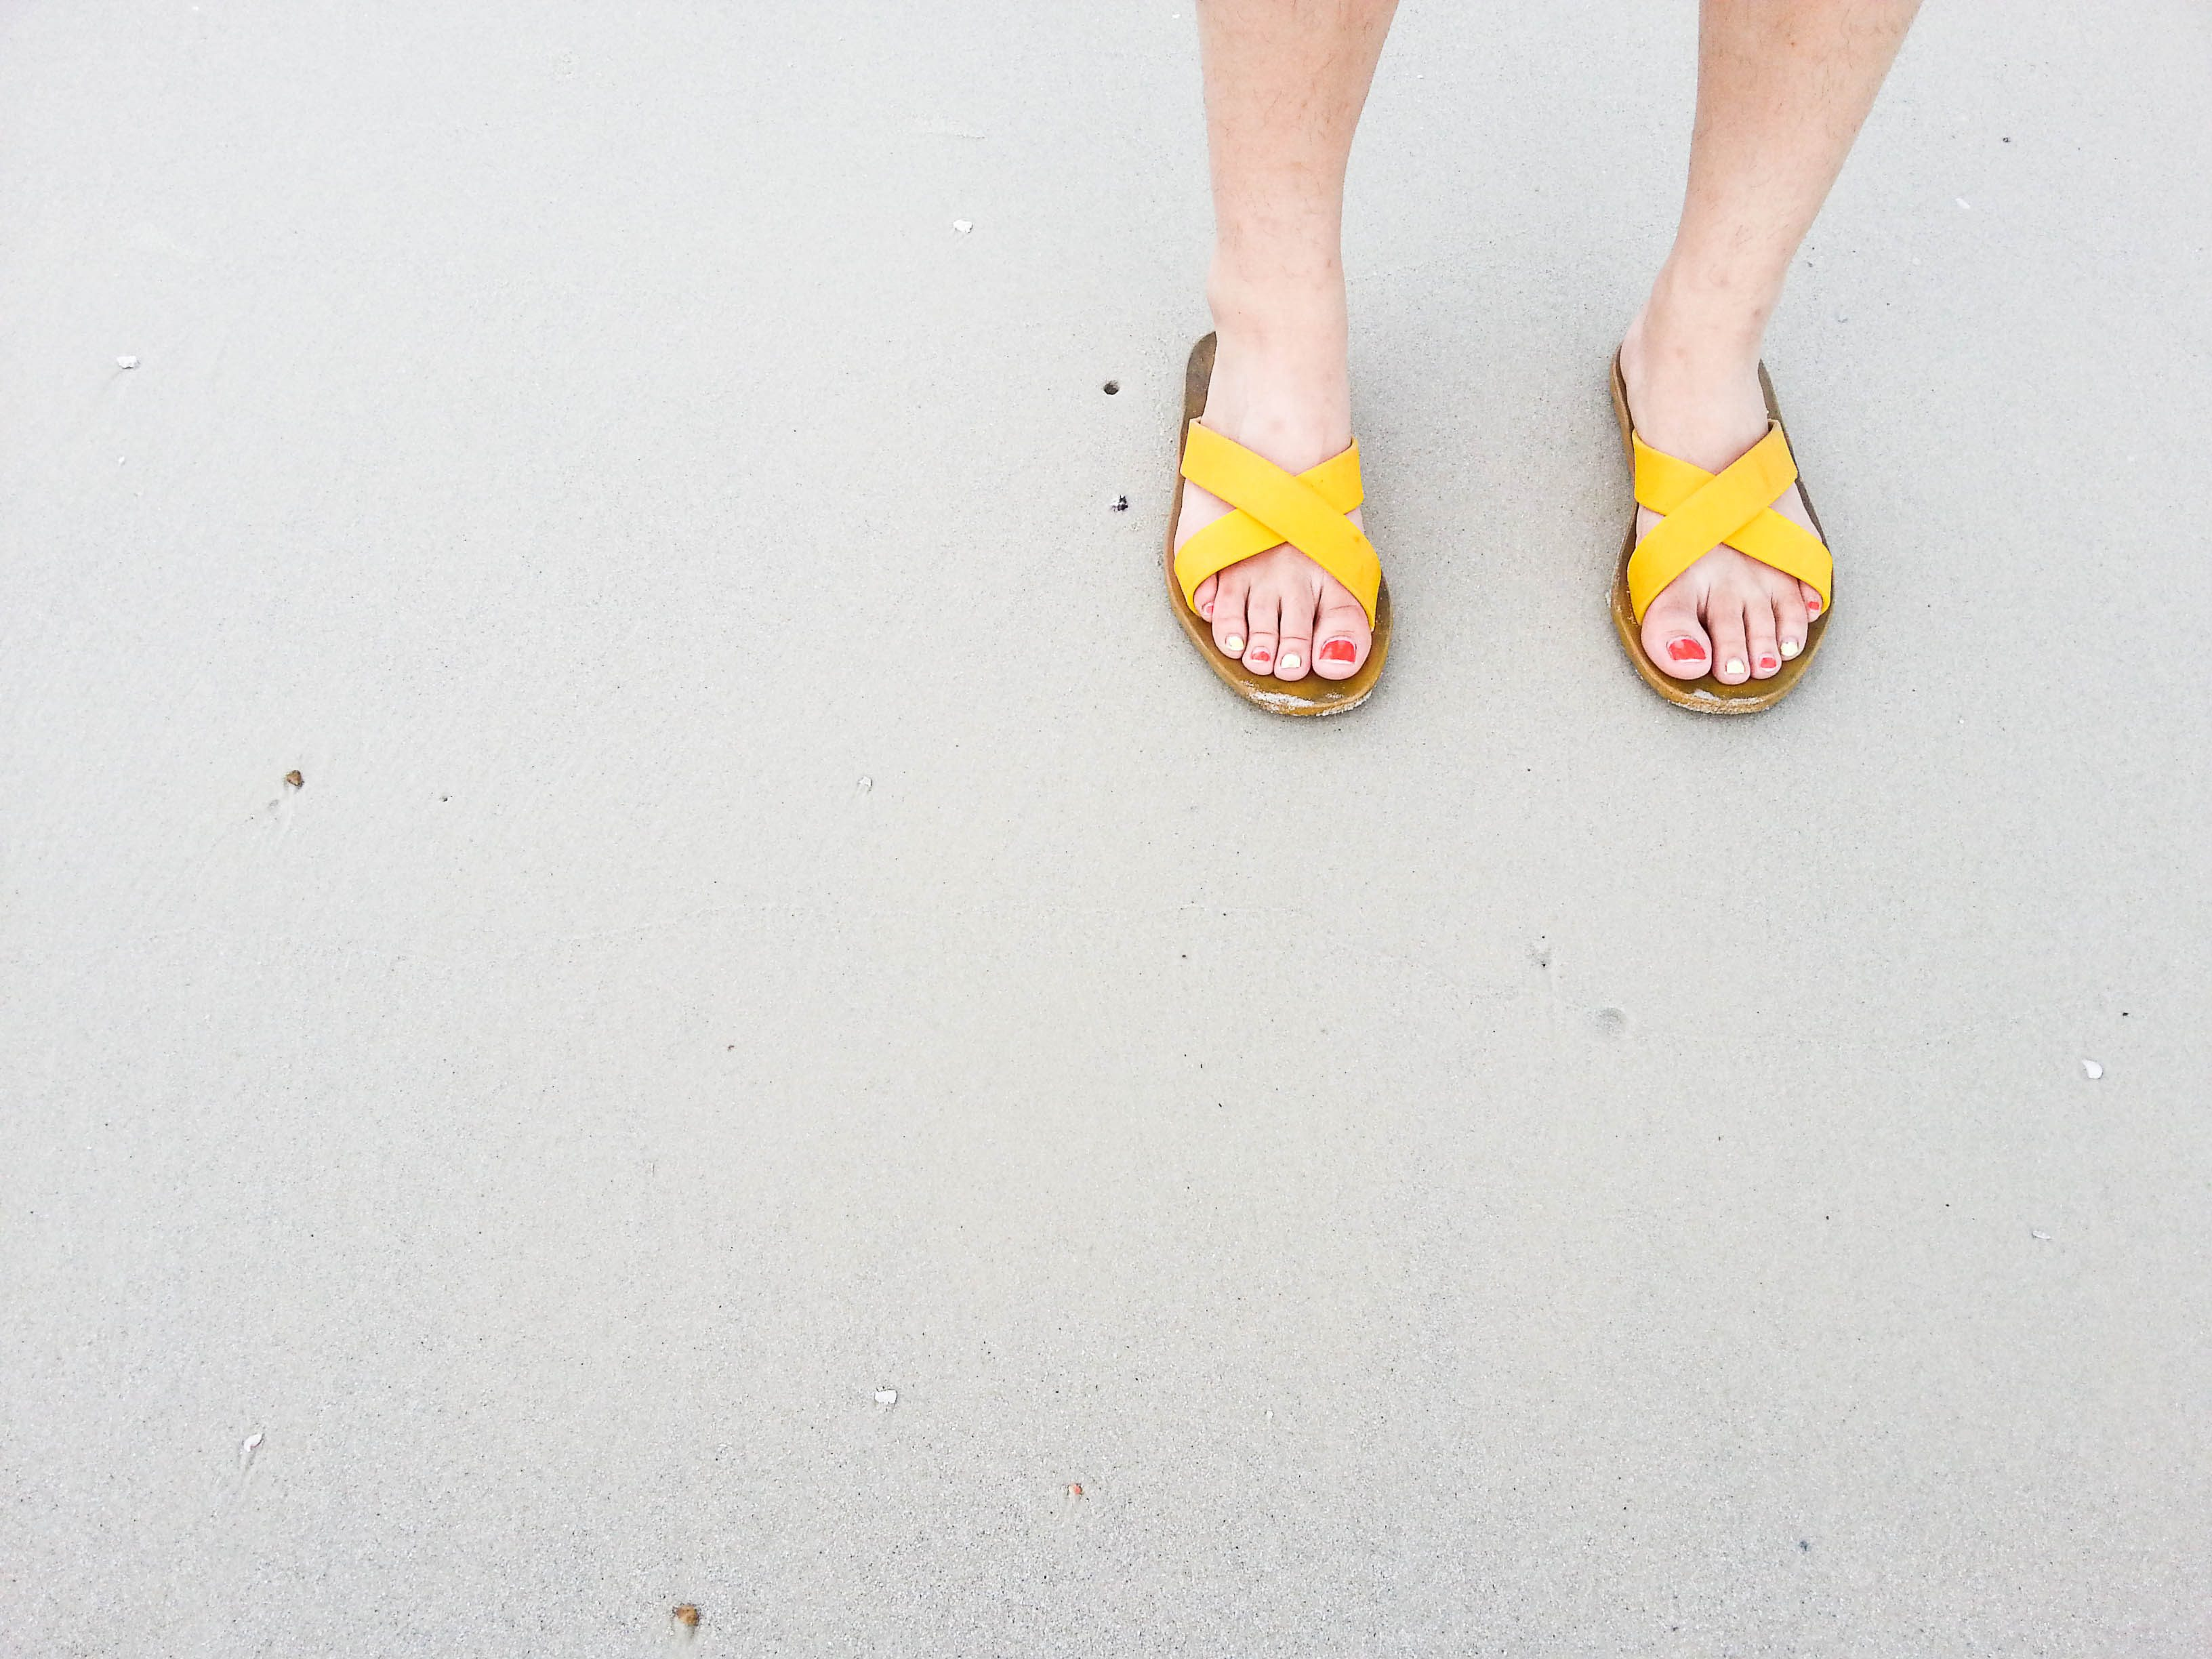 woman wearing yellow sandals